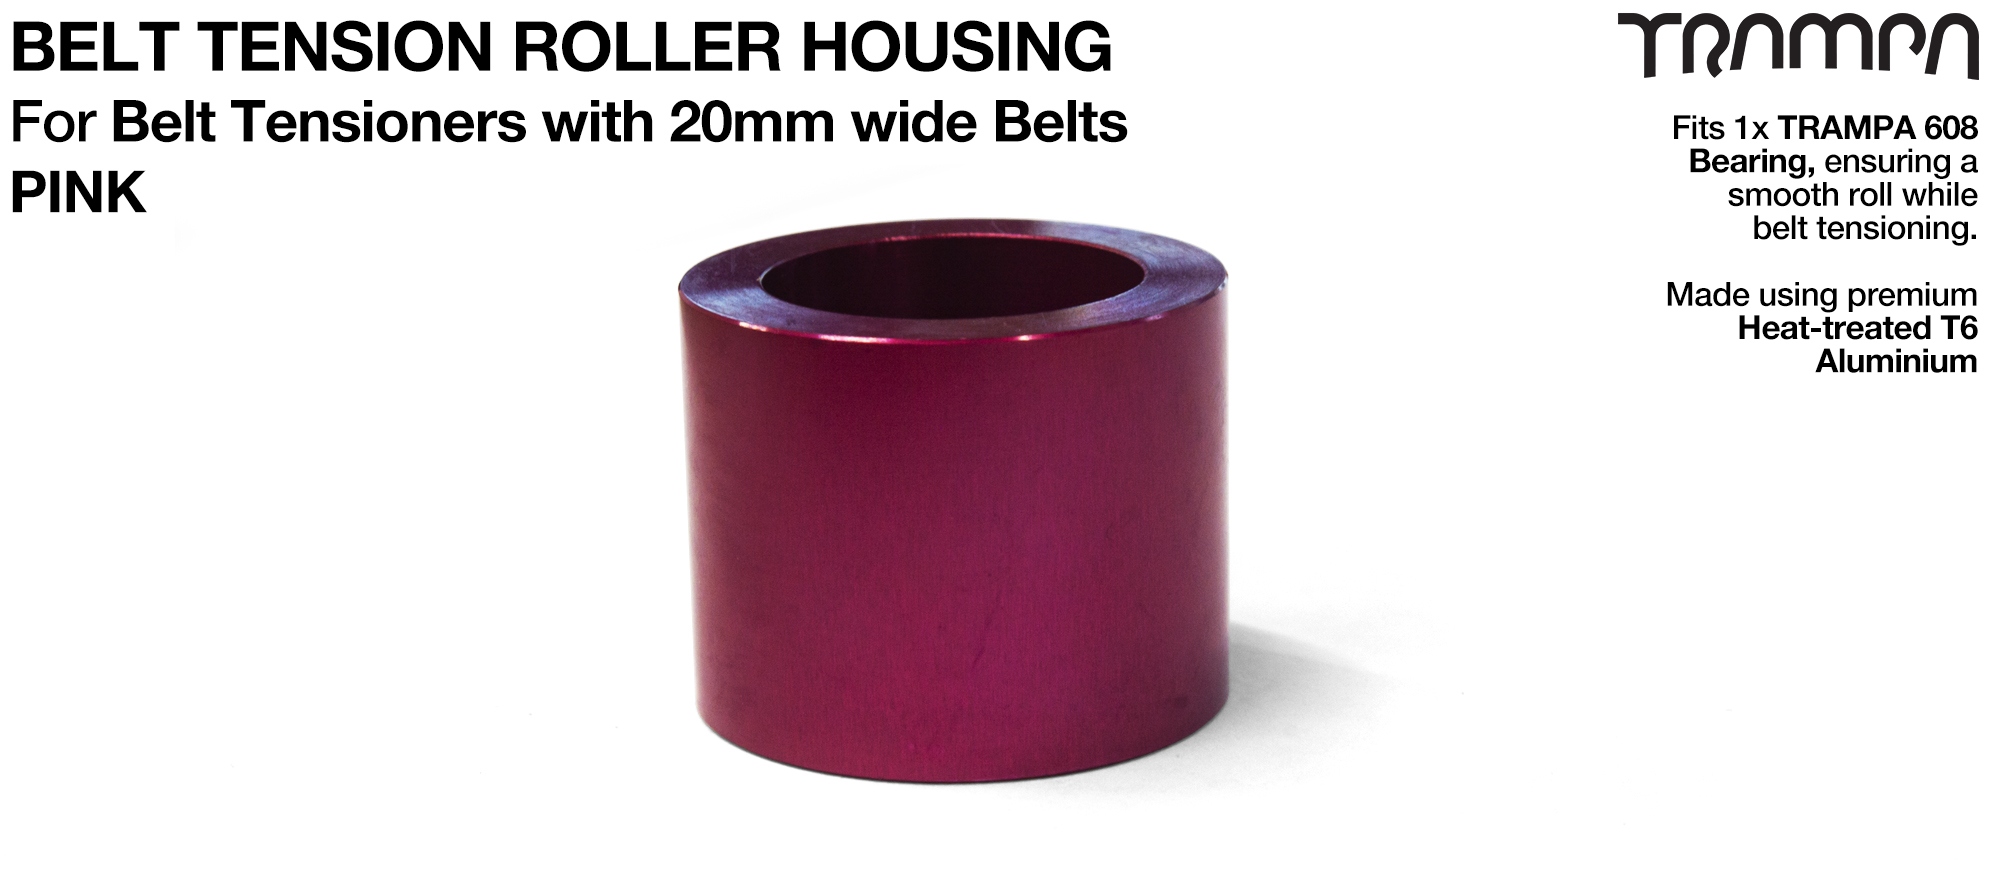 Belt Tension Roller Housing for 20mm Belts - PINK